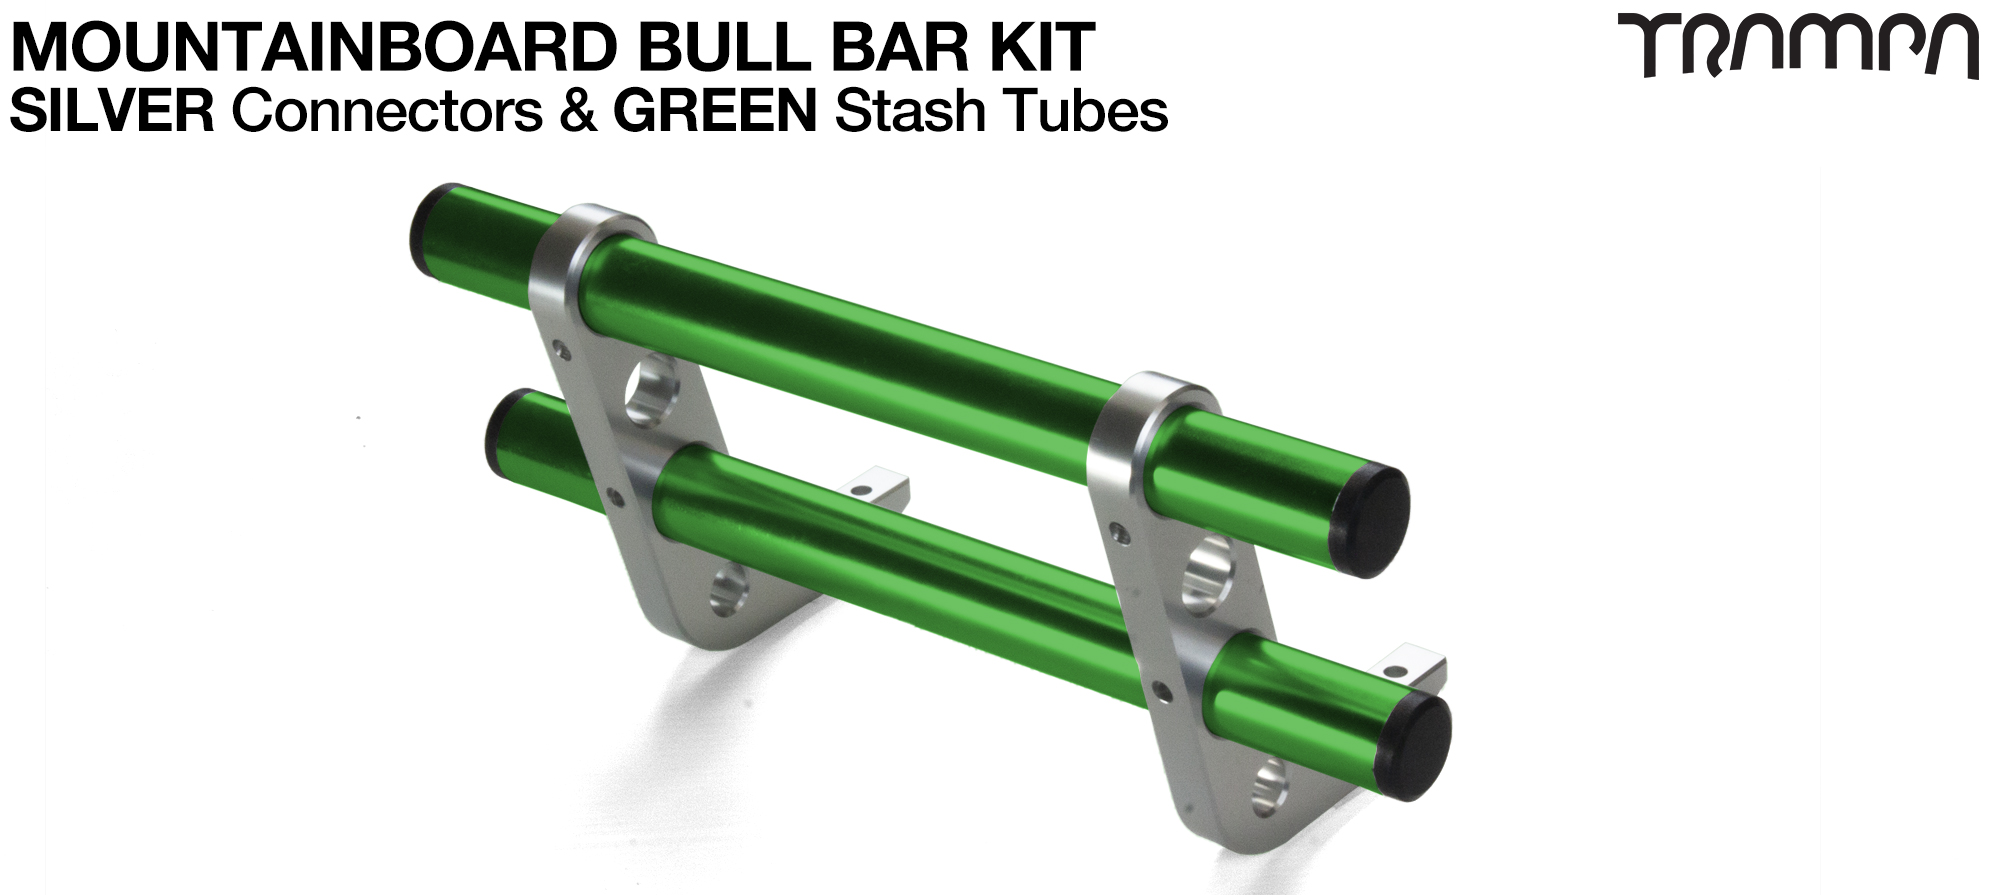 SILVER Uprights & GREEN Crossbar BULL BARS for MOUNTAINBOARDS T6 Heat Treated CNC'd Aluminium Uprights, with Hollow Aluminium Stash Tubes with Rubber end bungs